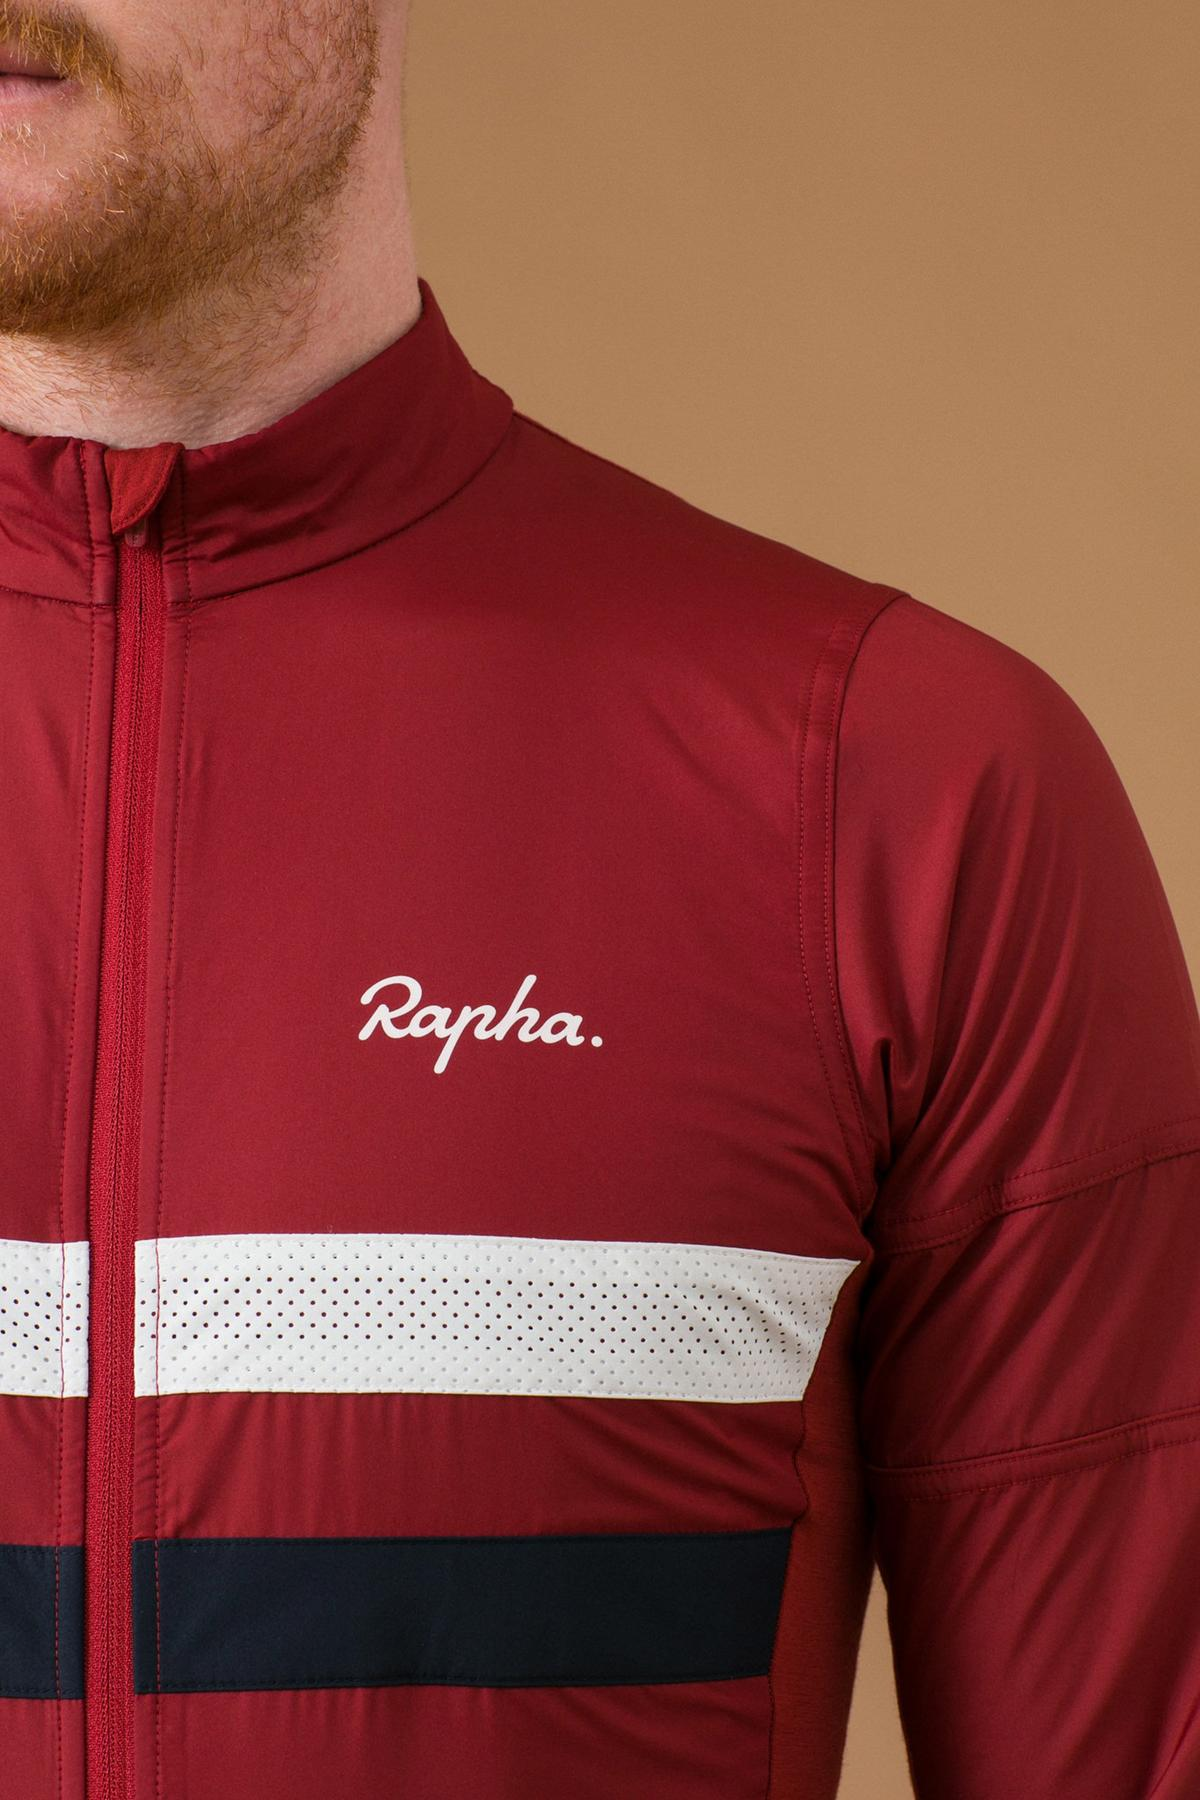 Rapha Brevet Collection mens cycling jerseys mens cycling bib shorts with pockets pocket bib shorts